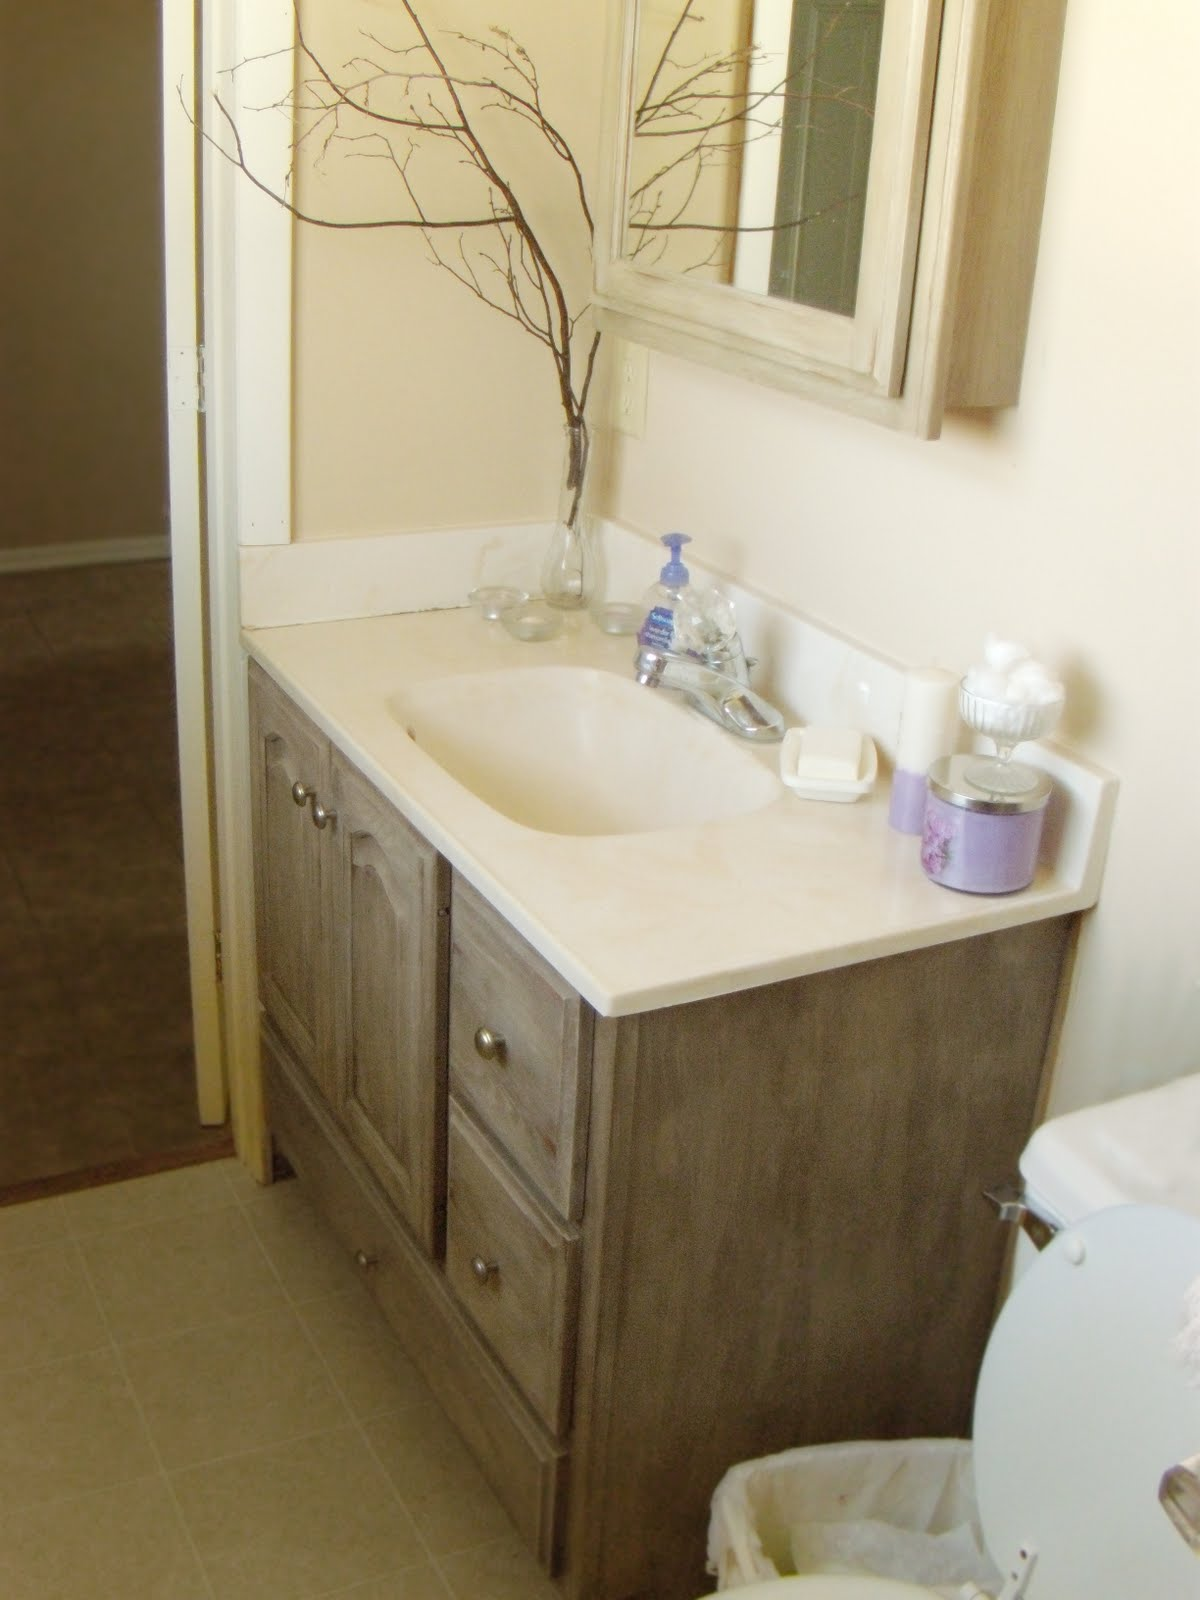 Redo Bathroom Cabinets Entrancing Down On Sanford Bathroom Vanity Redo Design Inspiration